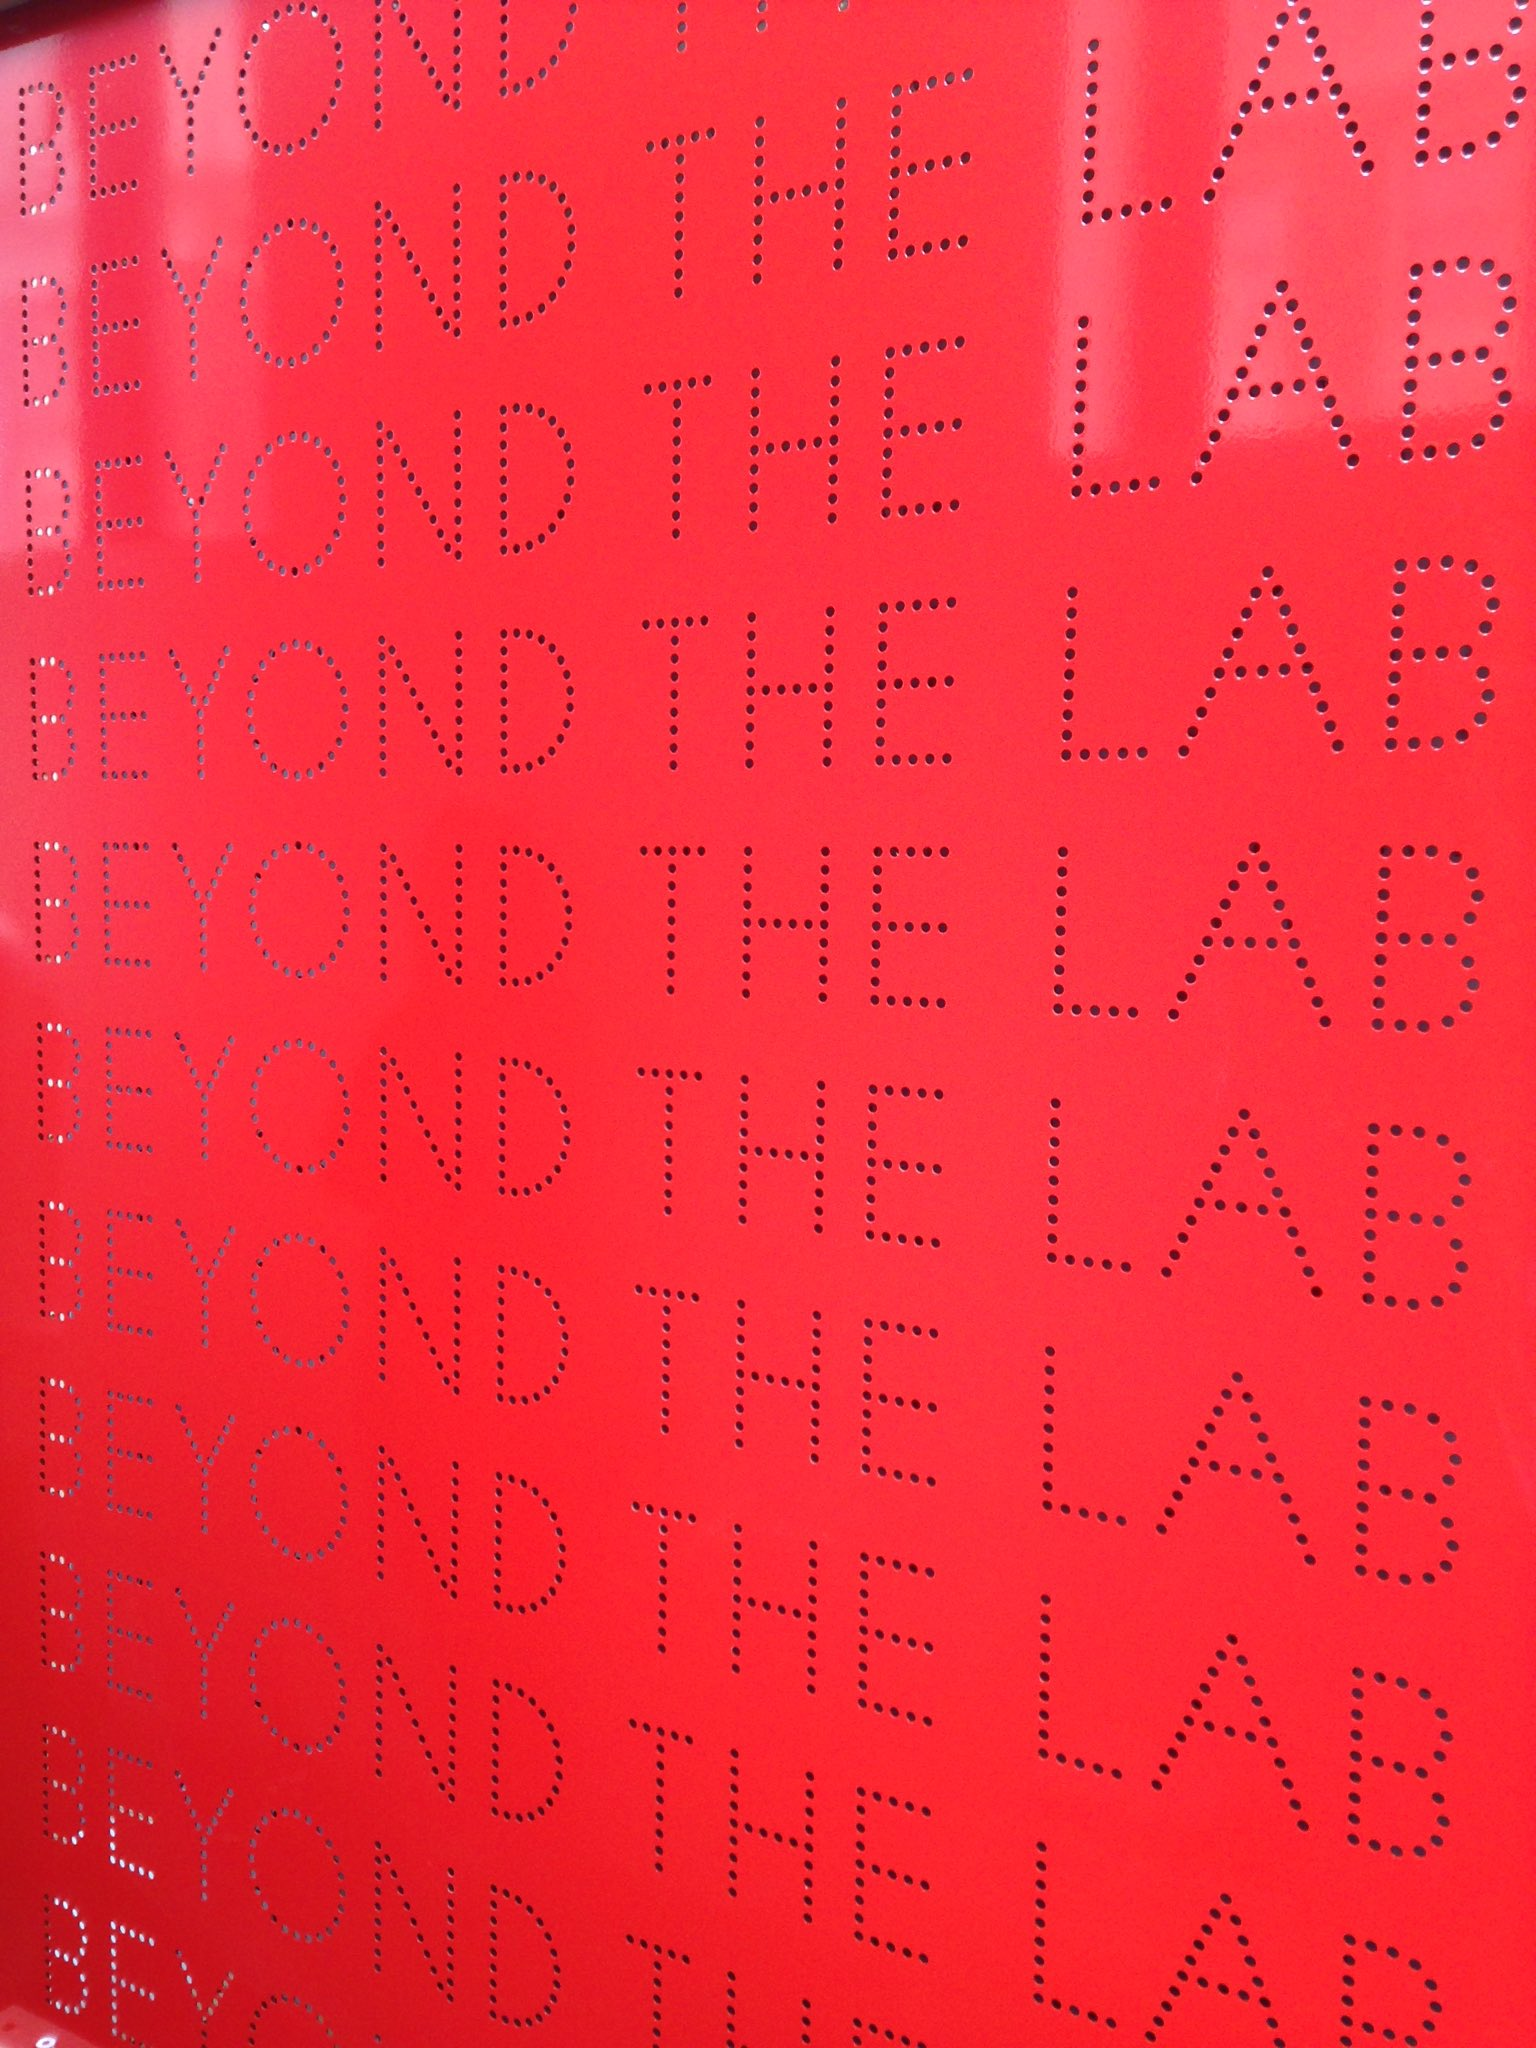 Edgy exhibition by @louis_buckley+team @sciencemuseum Unconventional but high impact science happening #BeyondtheLab https://t.co/MbGvb4Svht